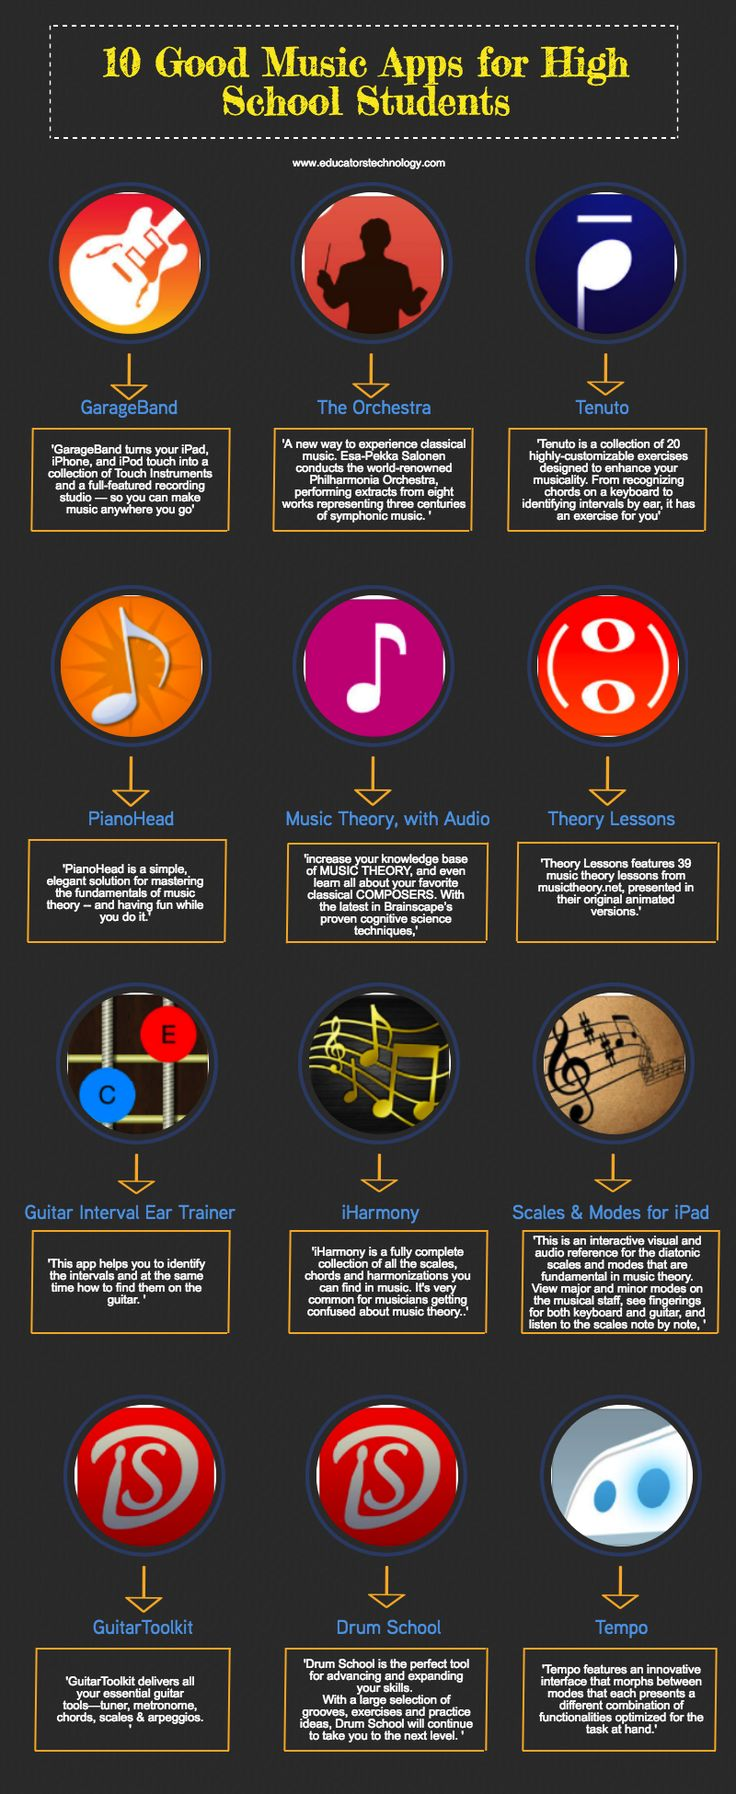 10 Good Music Apps for High School Students